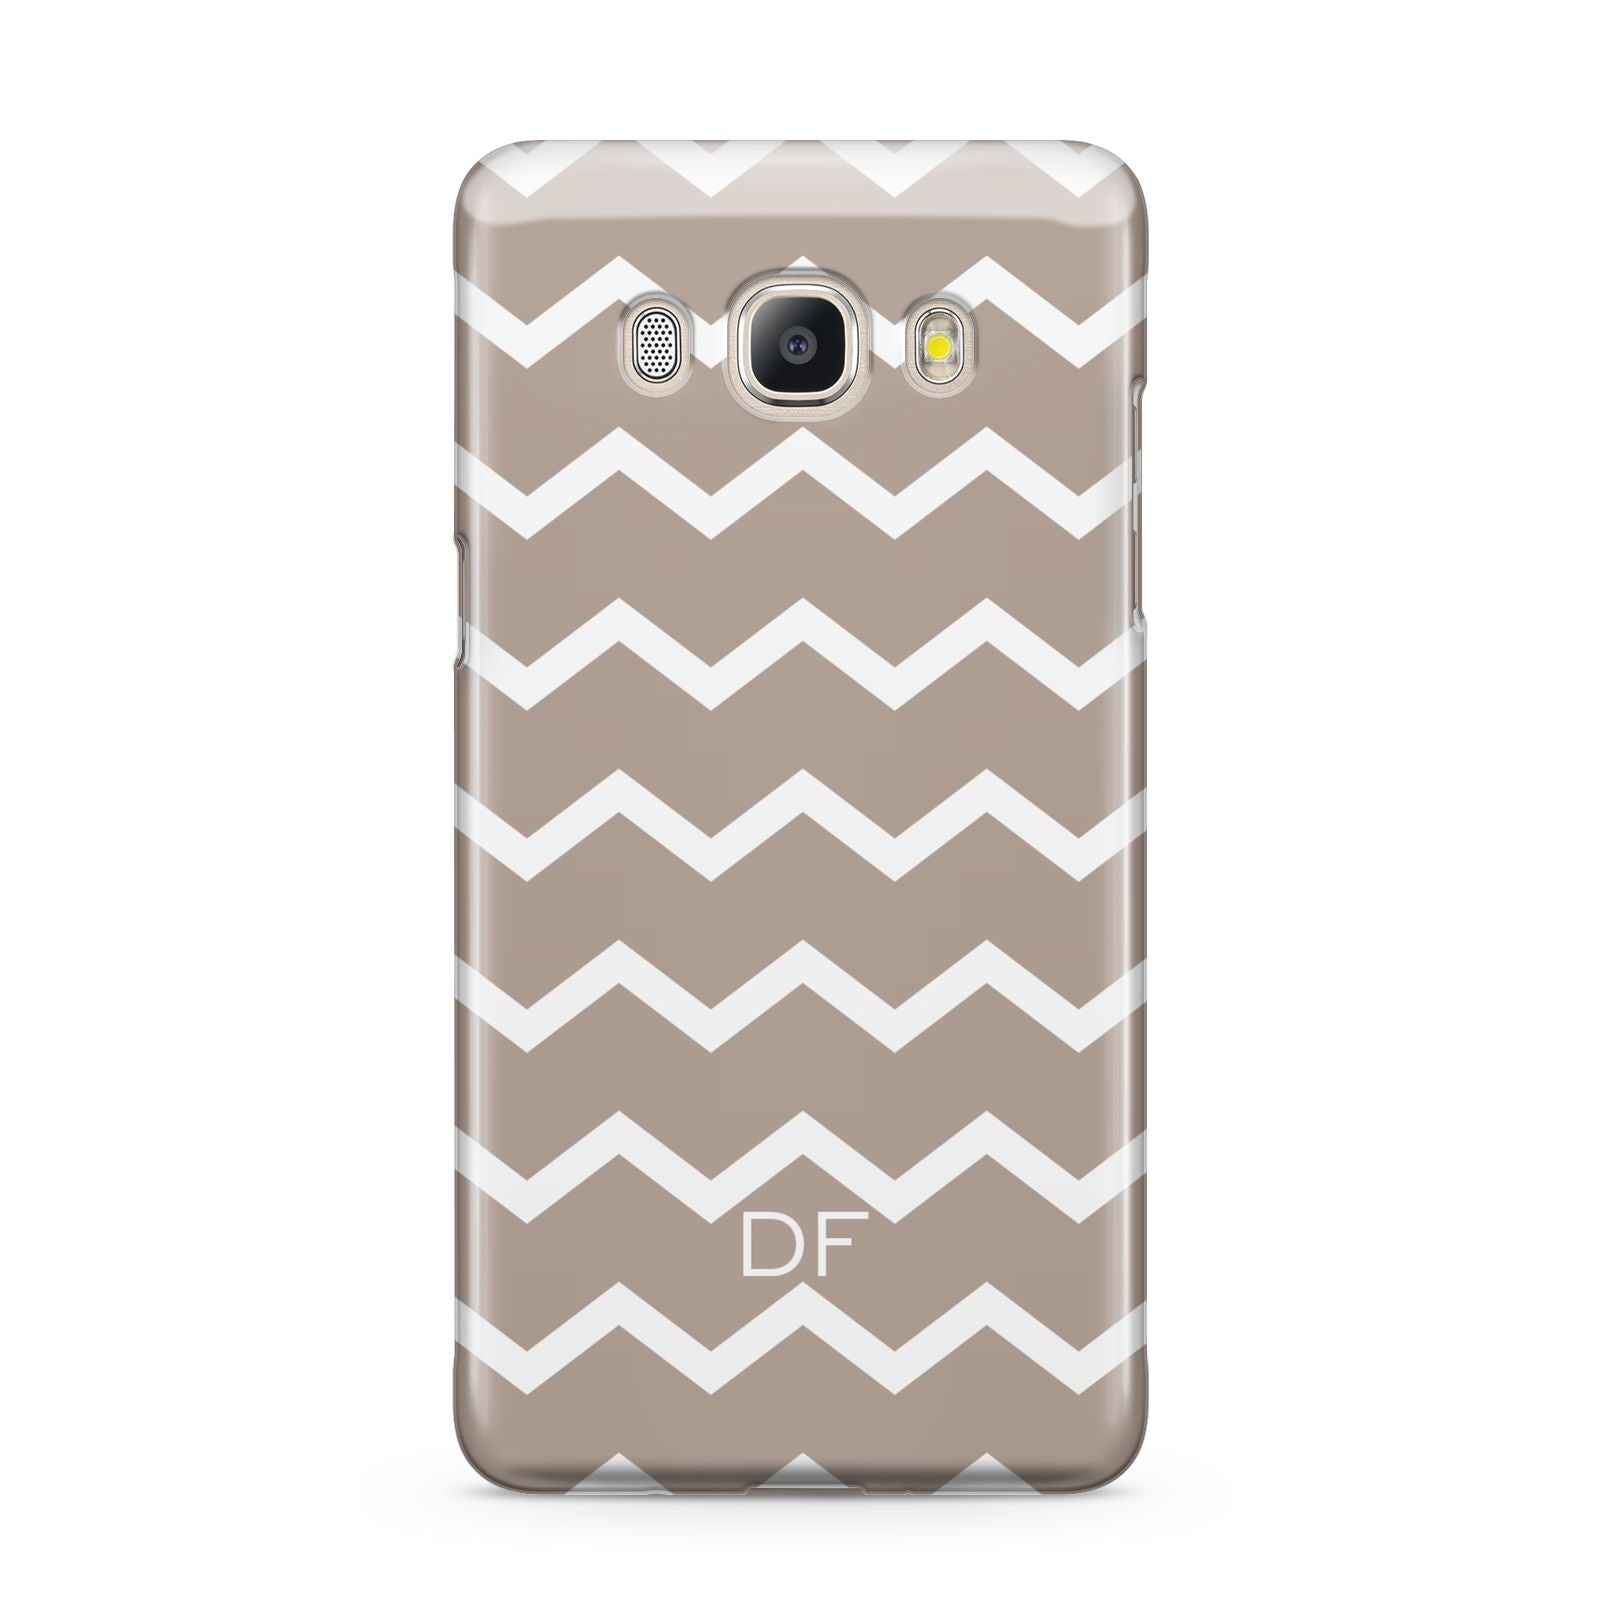 Personalised Chevron Beige Samsung Galaxy J5 2016 Case